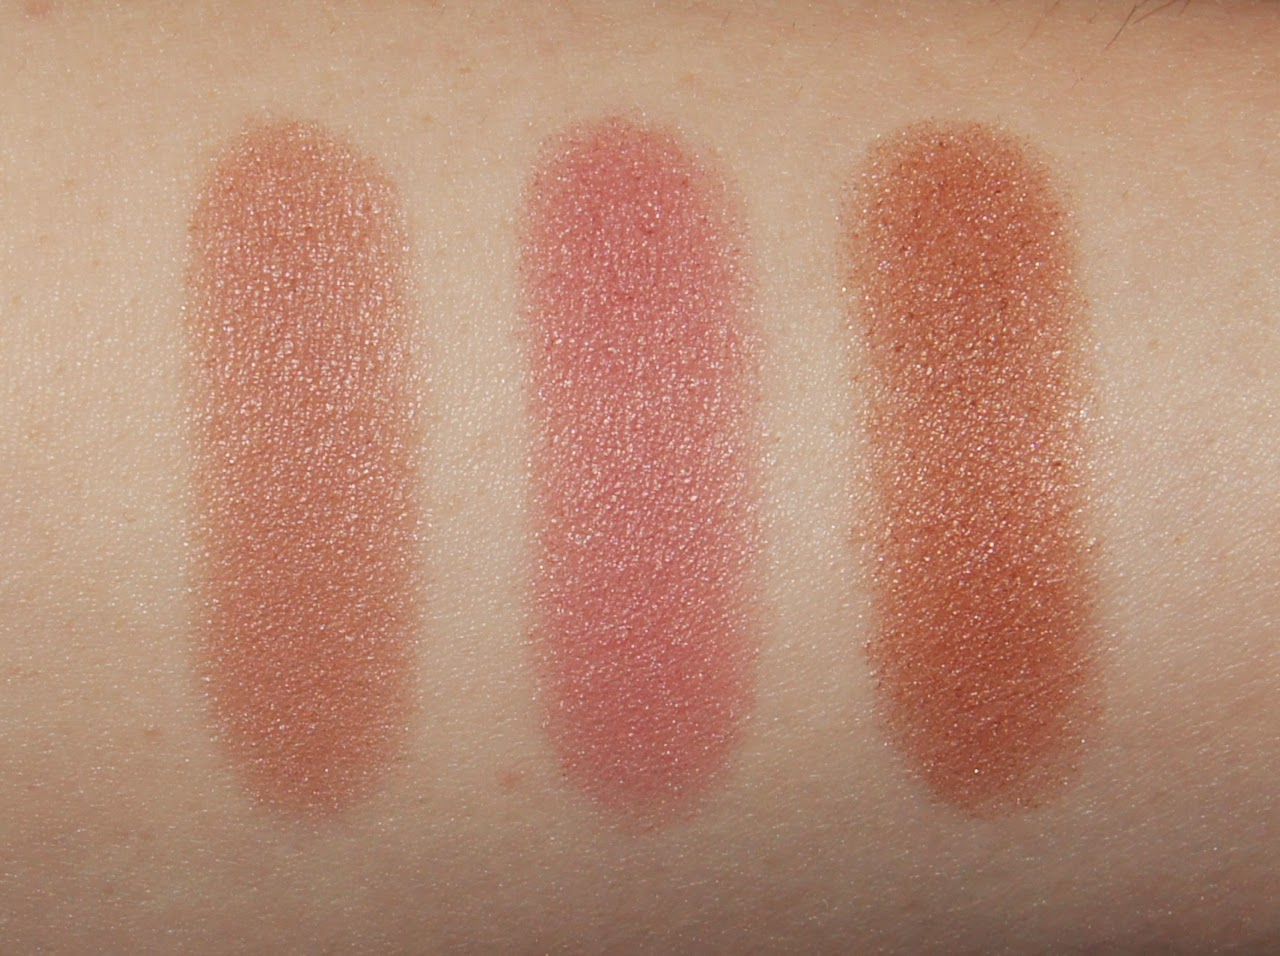 maxfactor creme puff blush swatches nude mauve seductive pink alluring rose